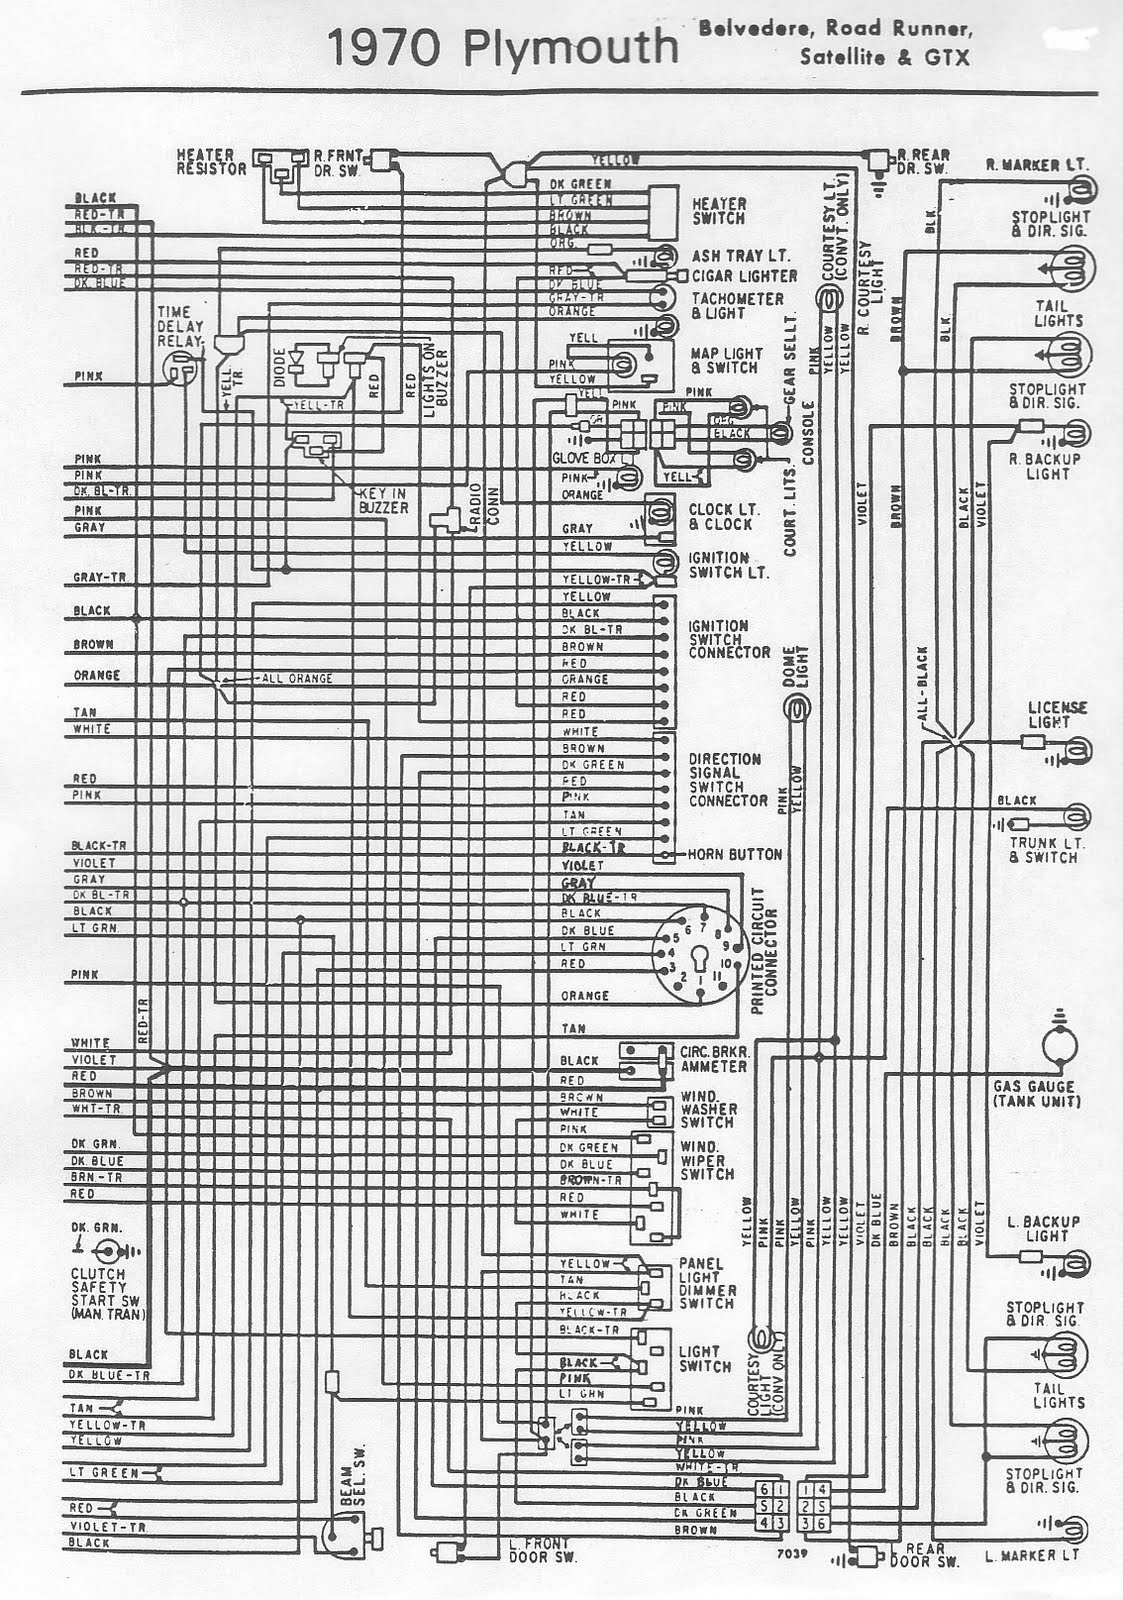 1970 plymonth cuda wiring diagrams automotive wiring diagrams home electrical wiring diagrams 70 dart wiring diagram [ 1123 x 1600 Pixel ]